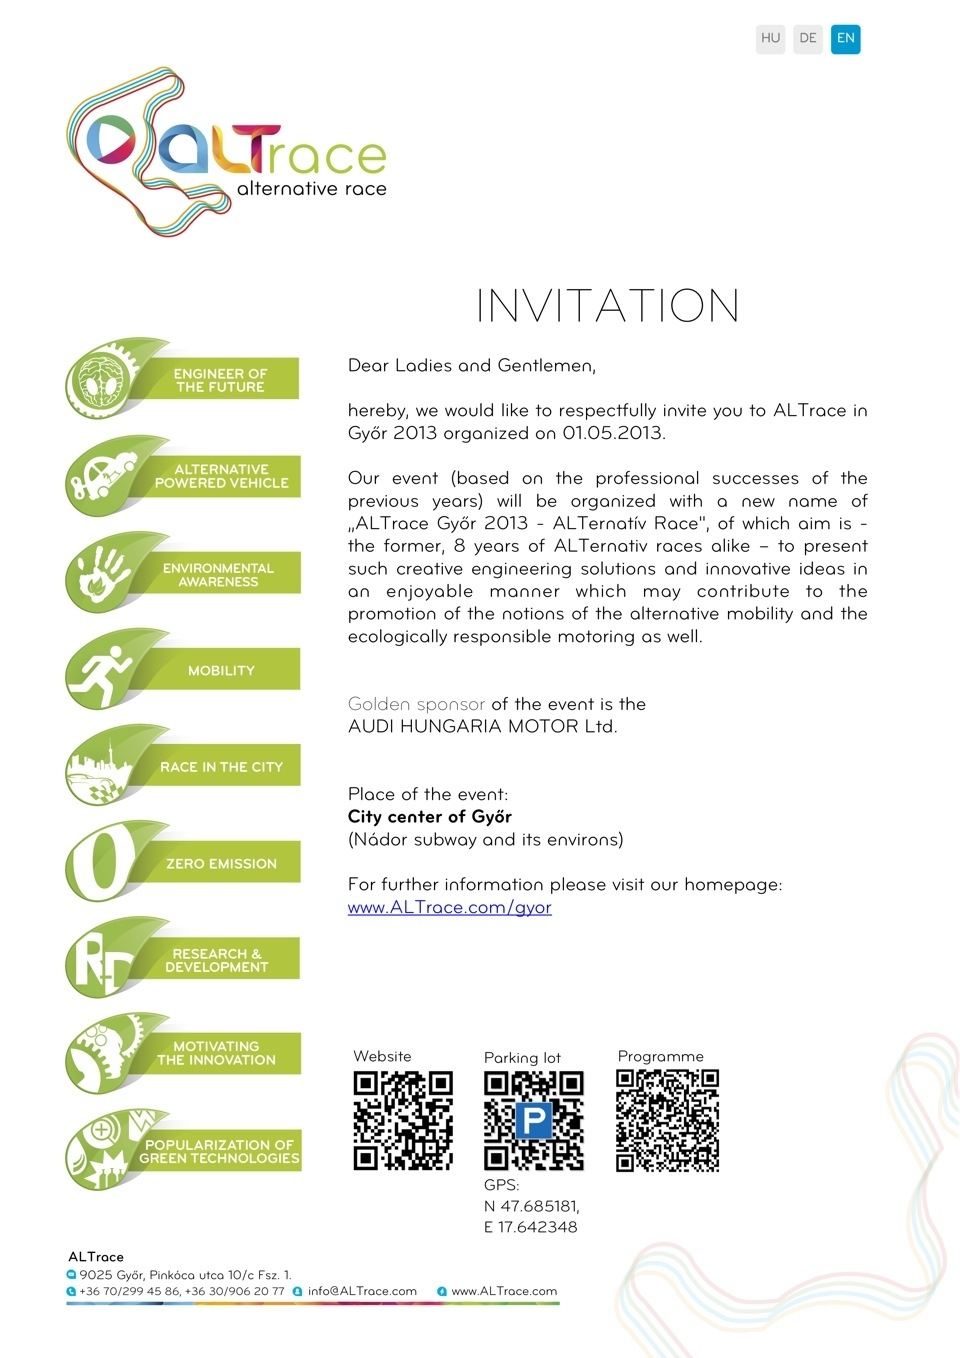 ALTrace Győr 2013 Invitation